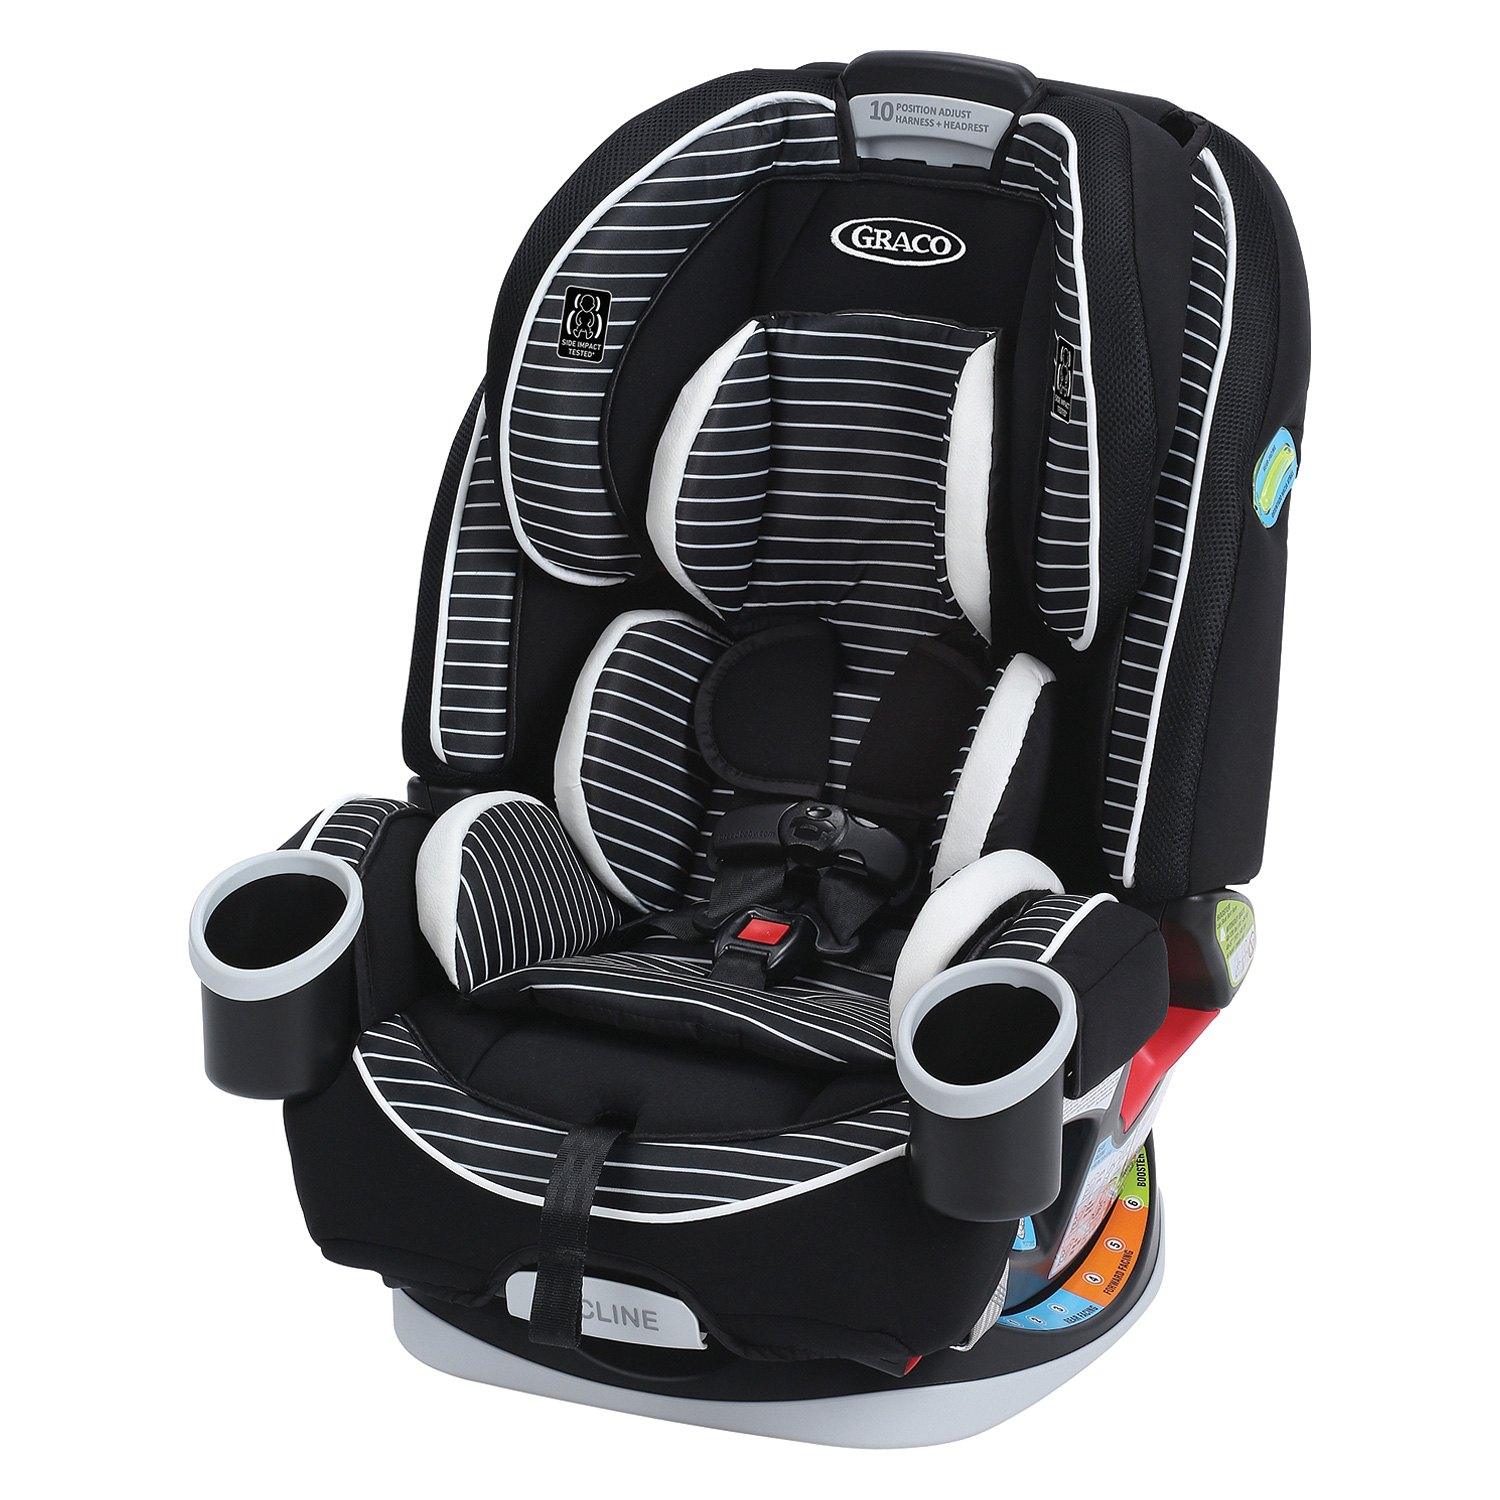 Graco Ever All In One Convertible Car Seat Recall